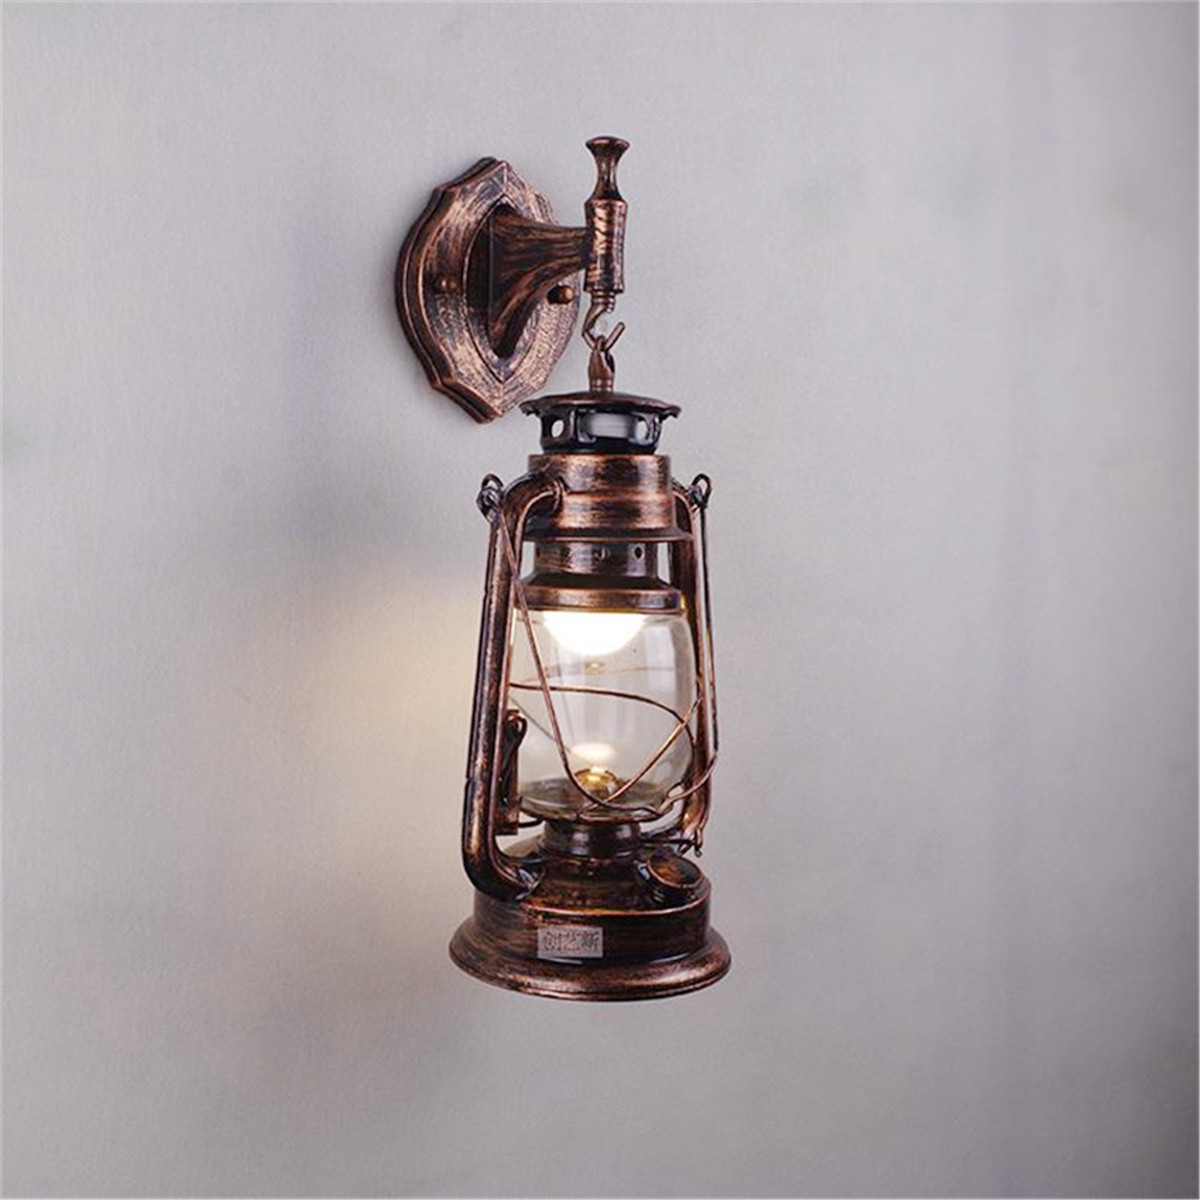 4 Style Metal & Glass Wall Light Sconce Holder Vintage Night Lamp Fixture Dining Hall Bar Club Coffee Shop Restaurant Home Decor edison vintage style e27 copper screw rotary switch lamp holder cafe bar coffee shop store hall club